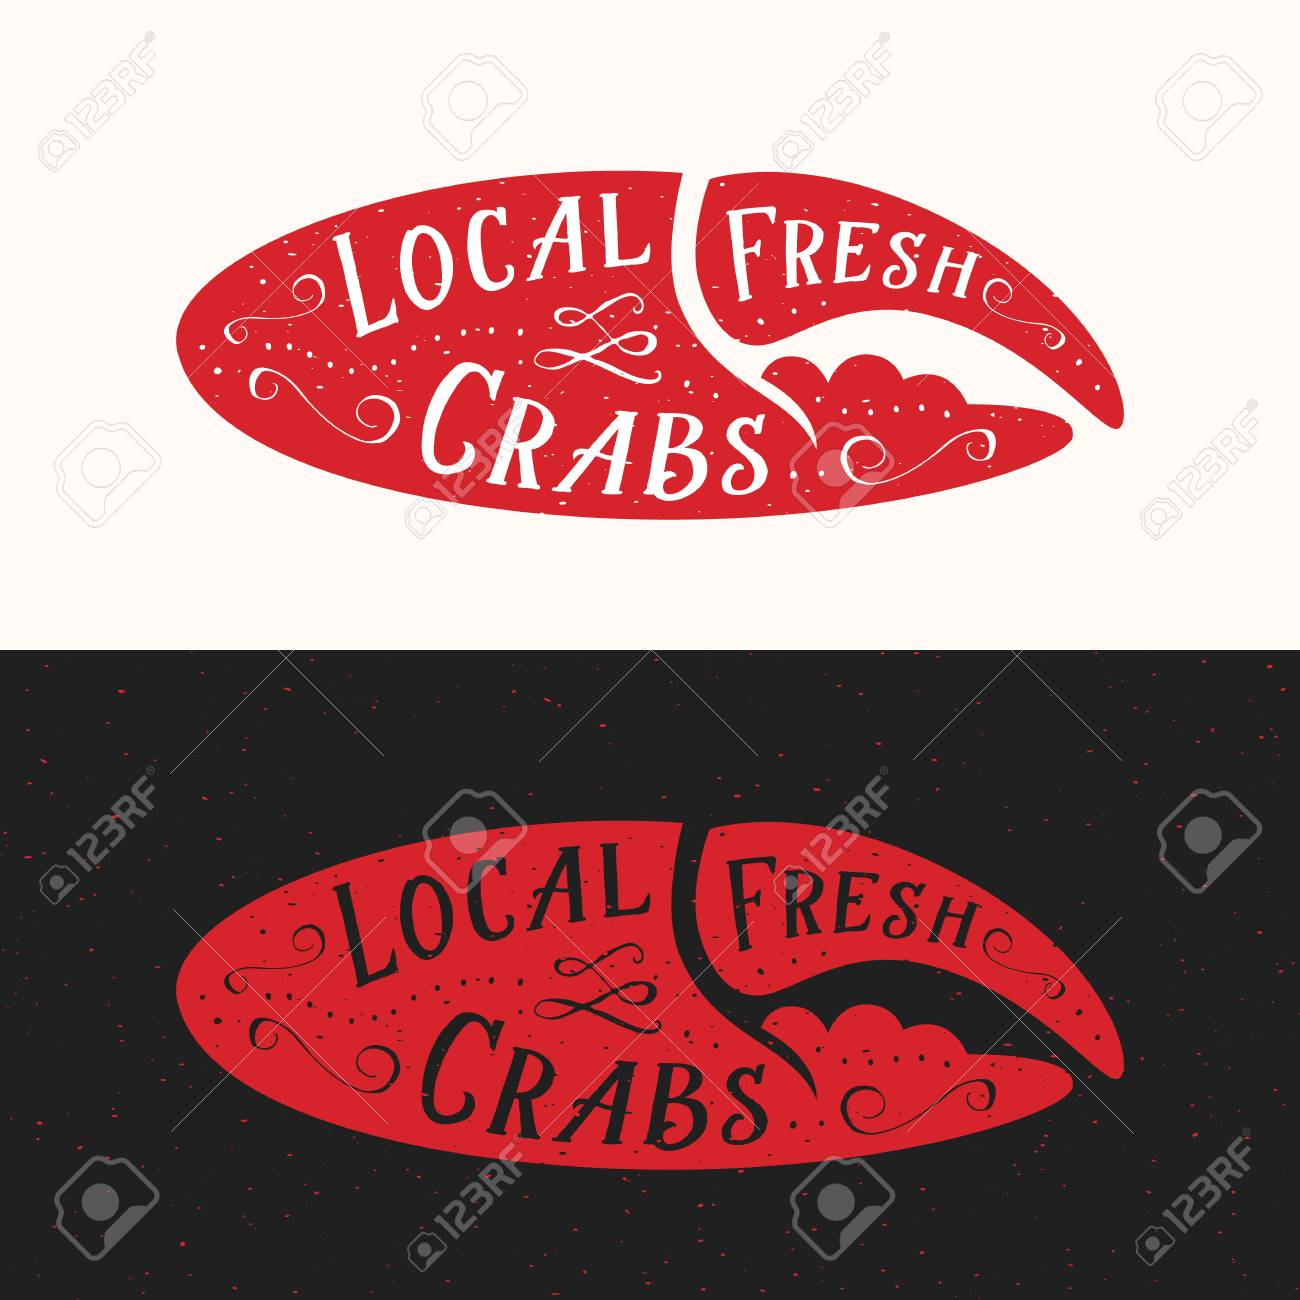 Local Fresh Crabs Sign Seafood Abstract Vector Emblem Icon